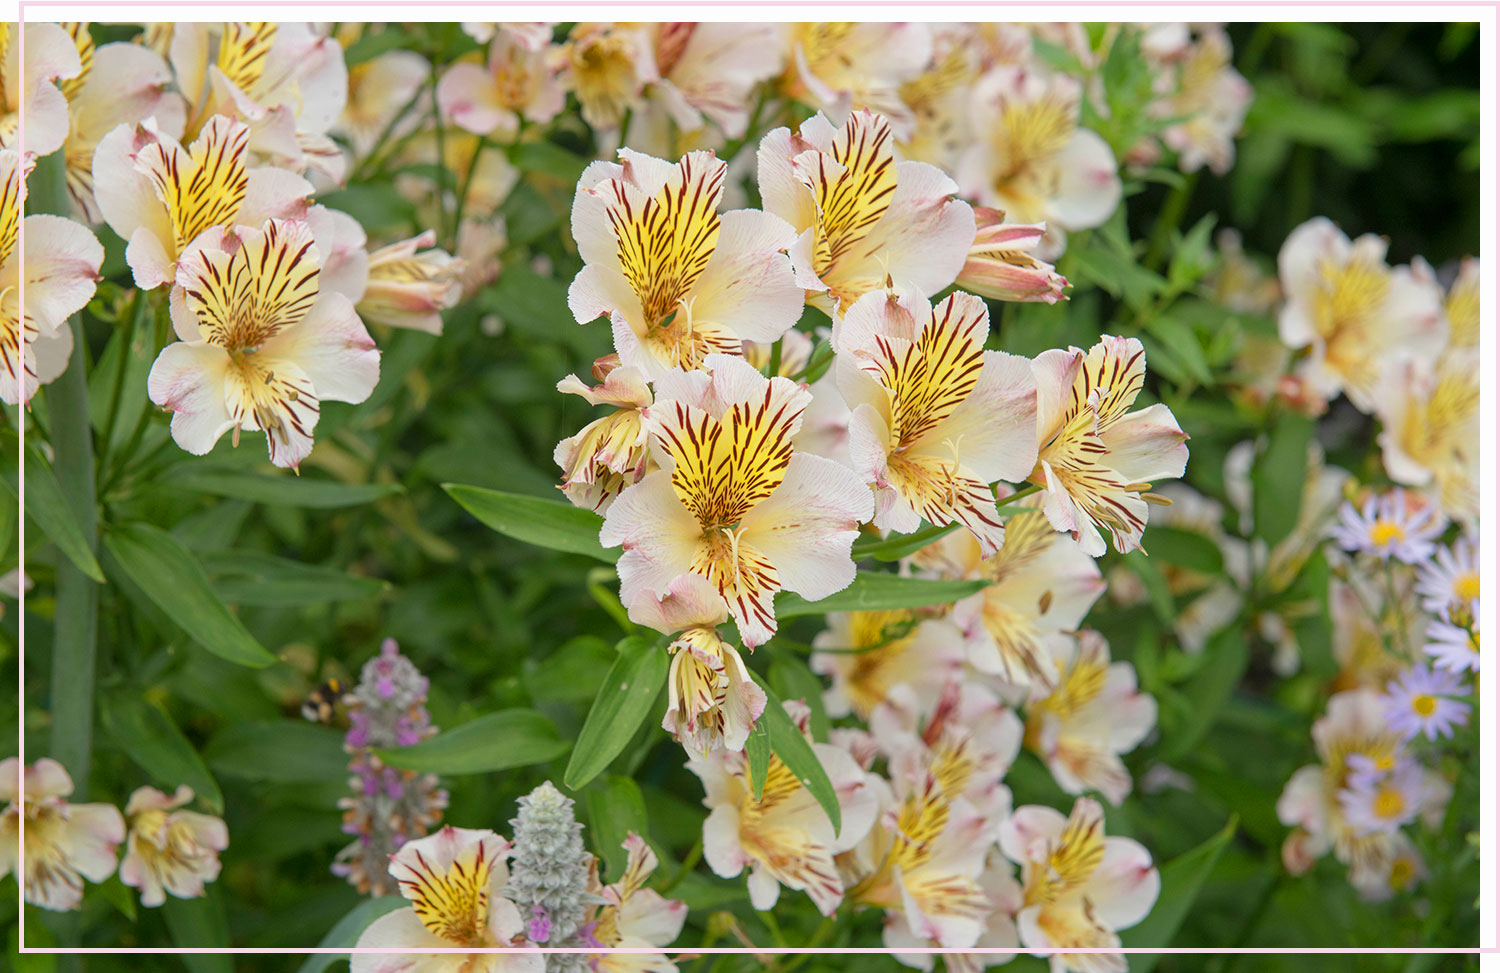 photo of white and yellow flowers